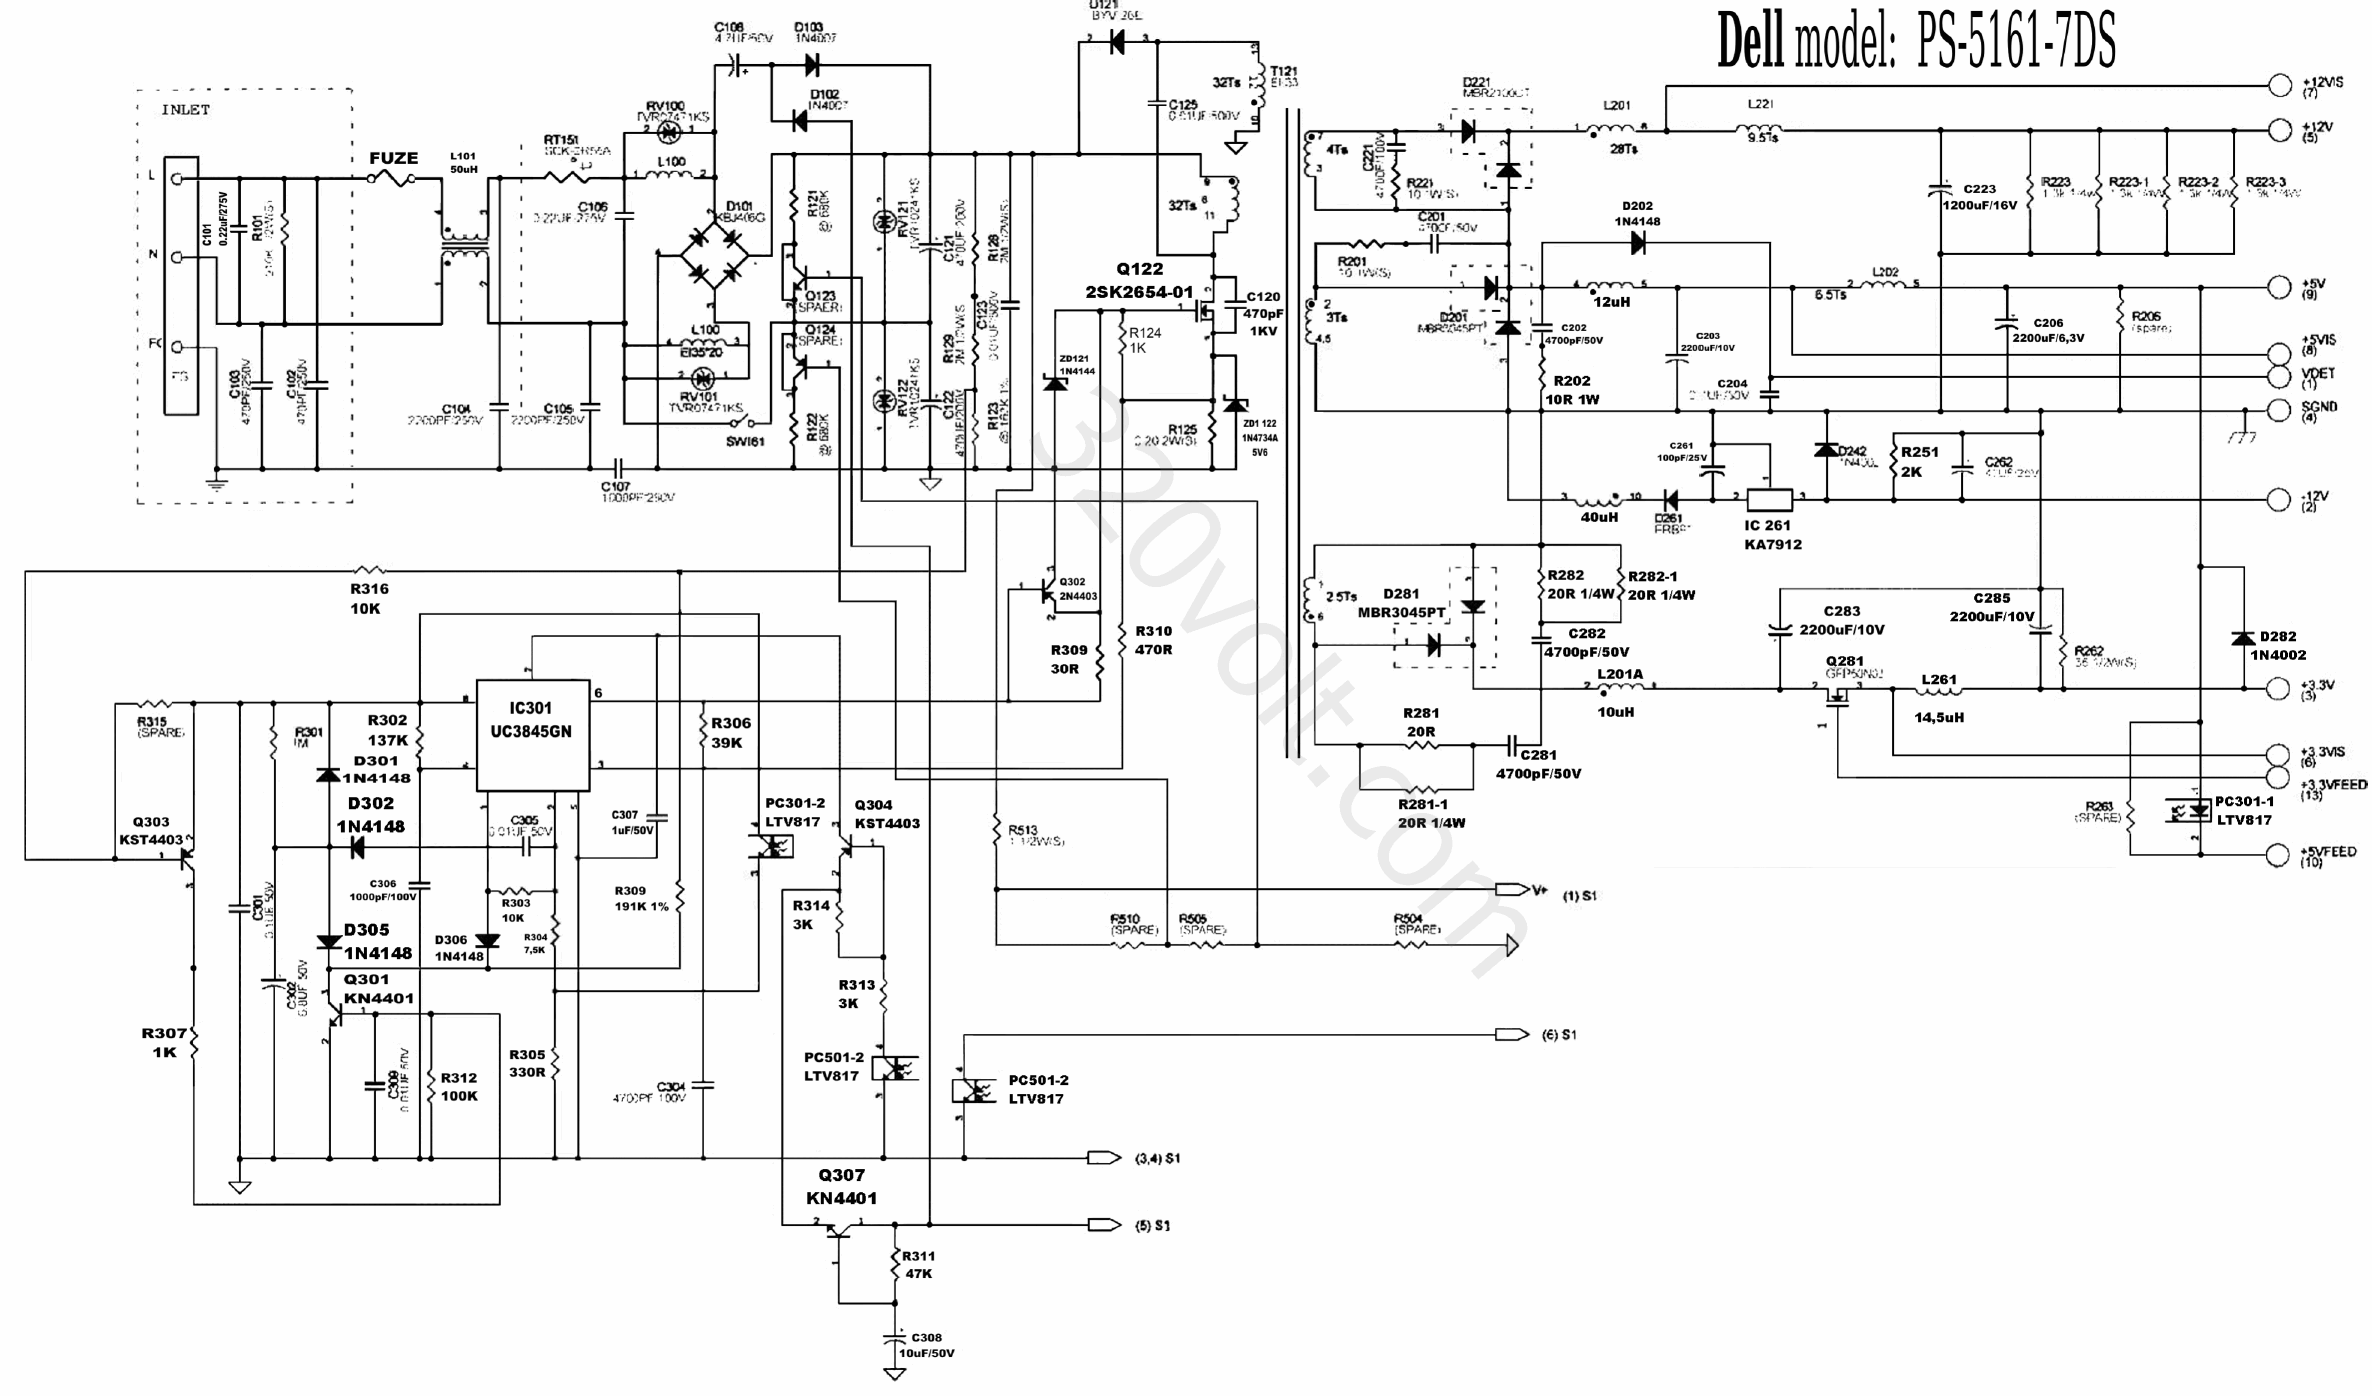 Doku furthermore Wiring Diagram Xbox 360 Headset besides S 360 12 Power Supply Wiring Diagram furthermore Xbox One Power Cord Wiring Diagrams additionally For Xbox Free Download Wiring Diagrams Pictures. on xbox 360 power supply pinout